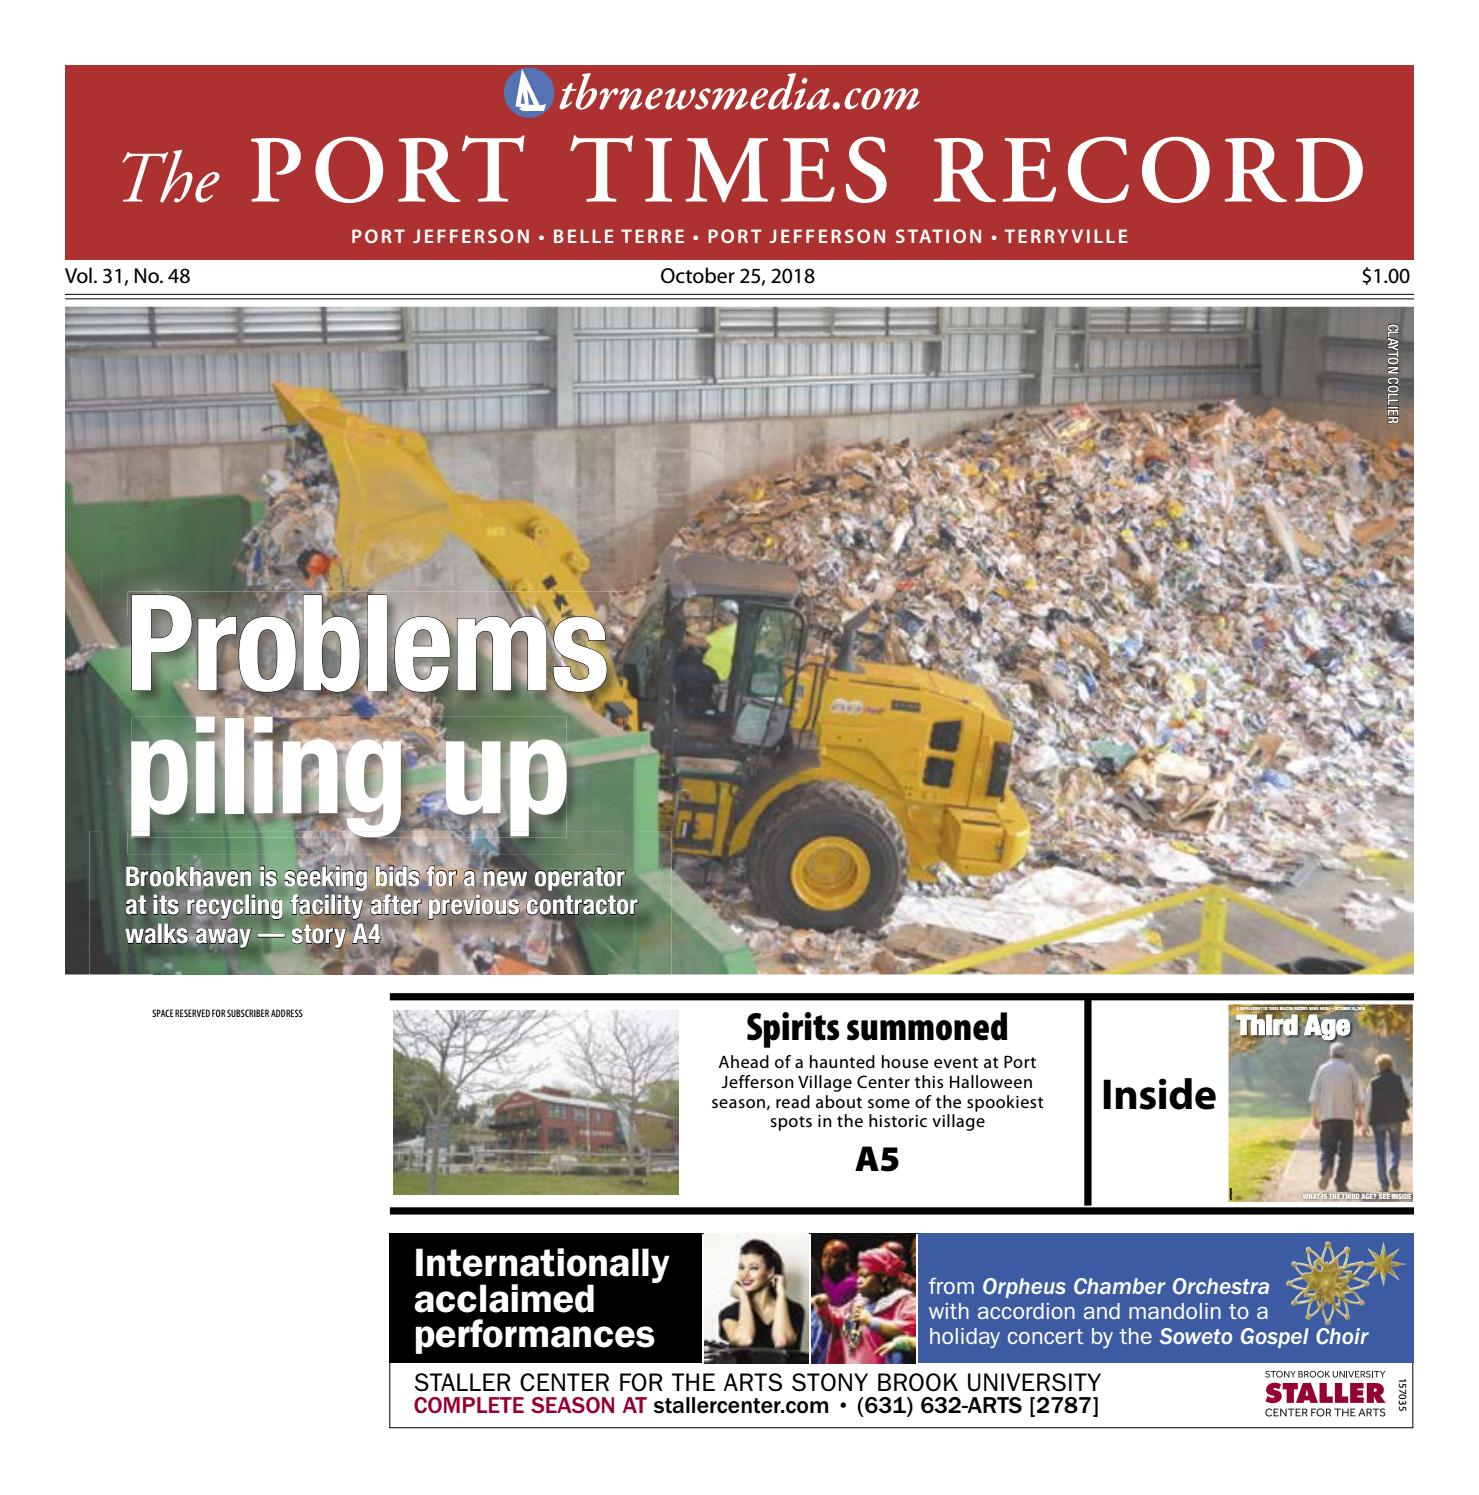 The Port Times Record October 25 2018 by TBR News Media issuu